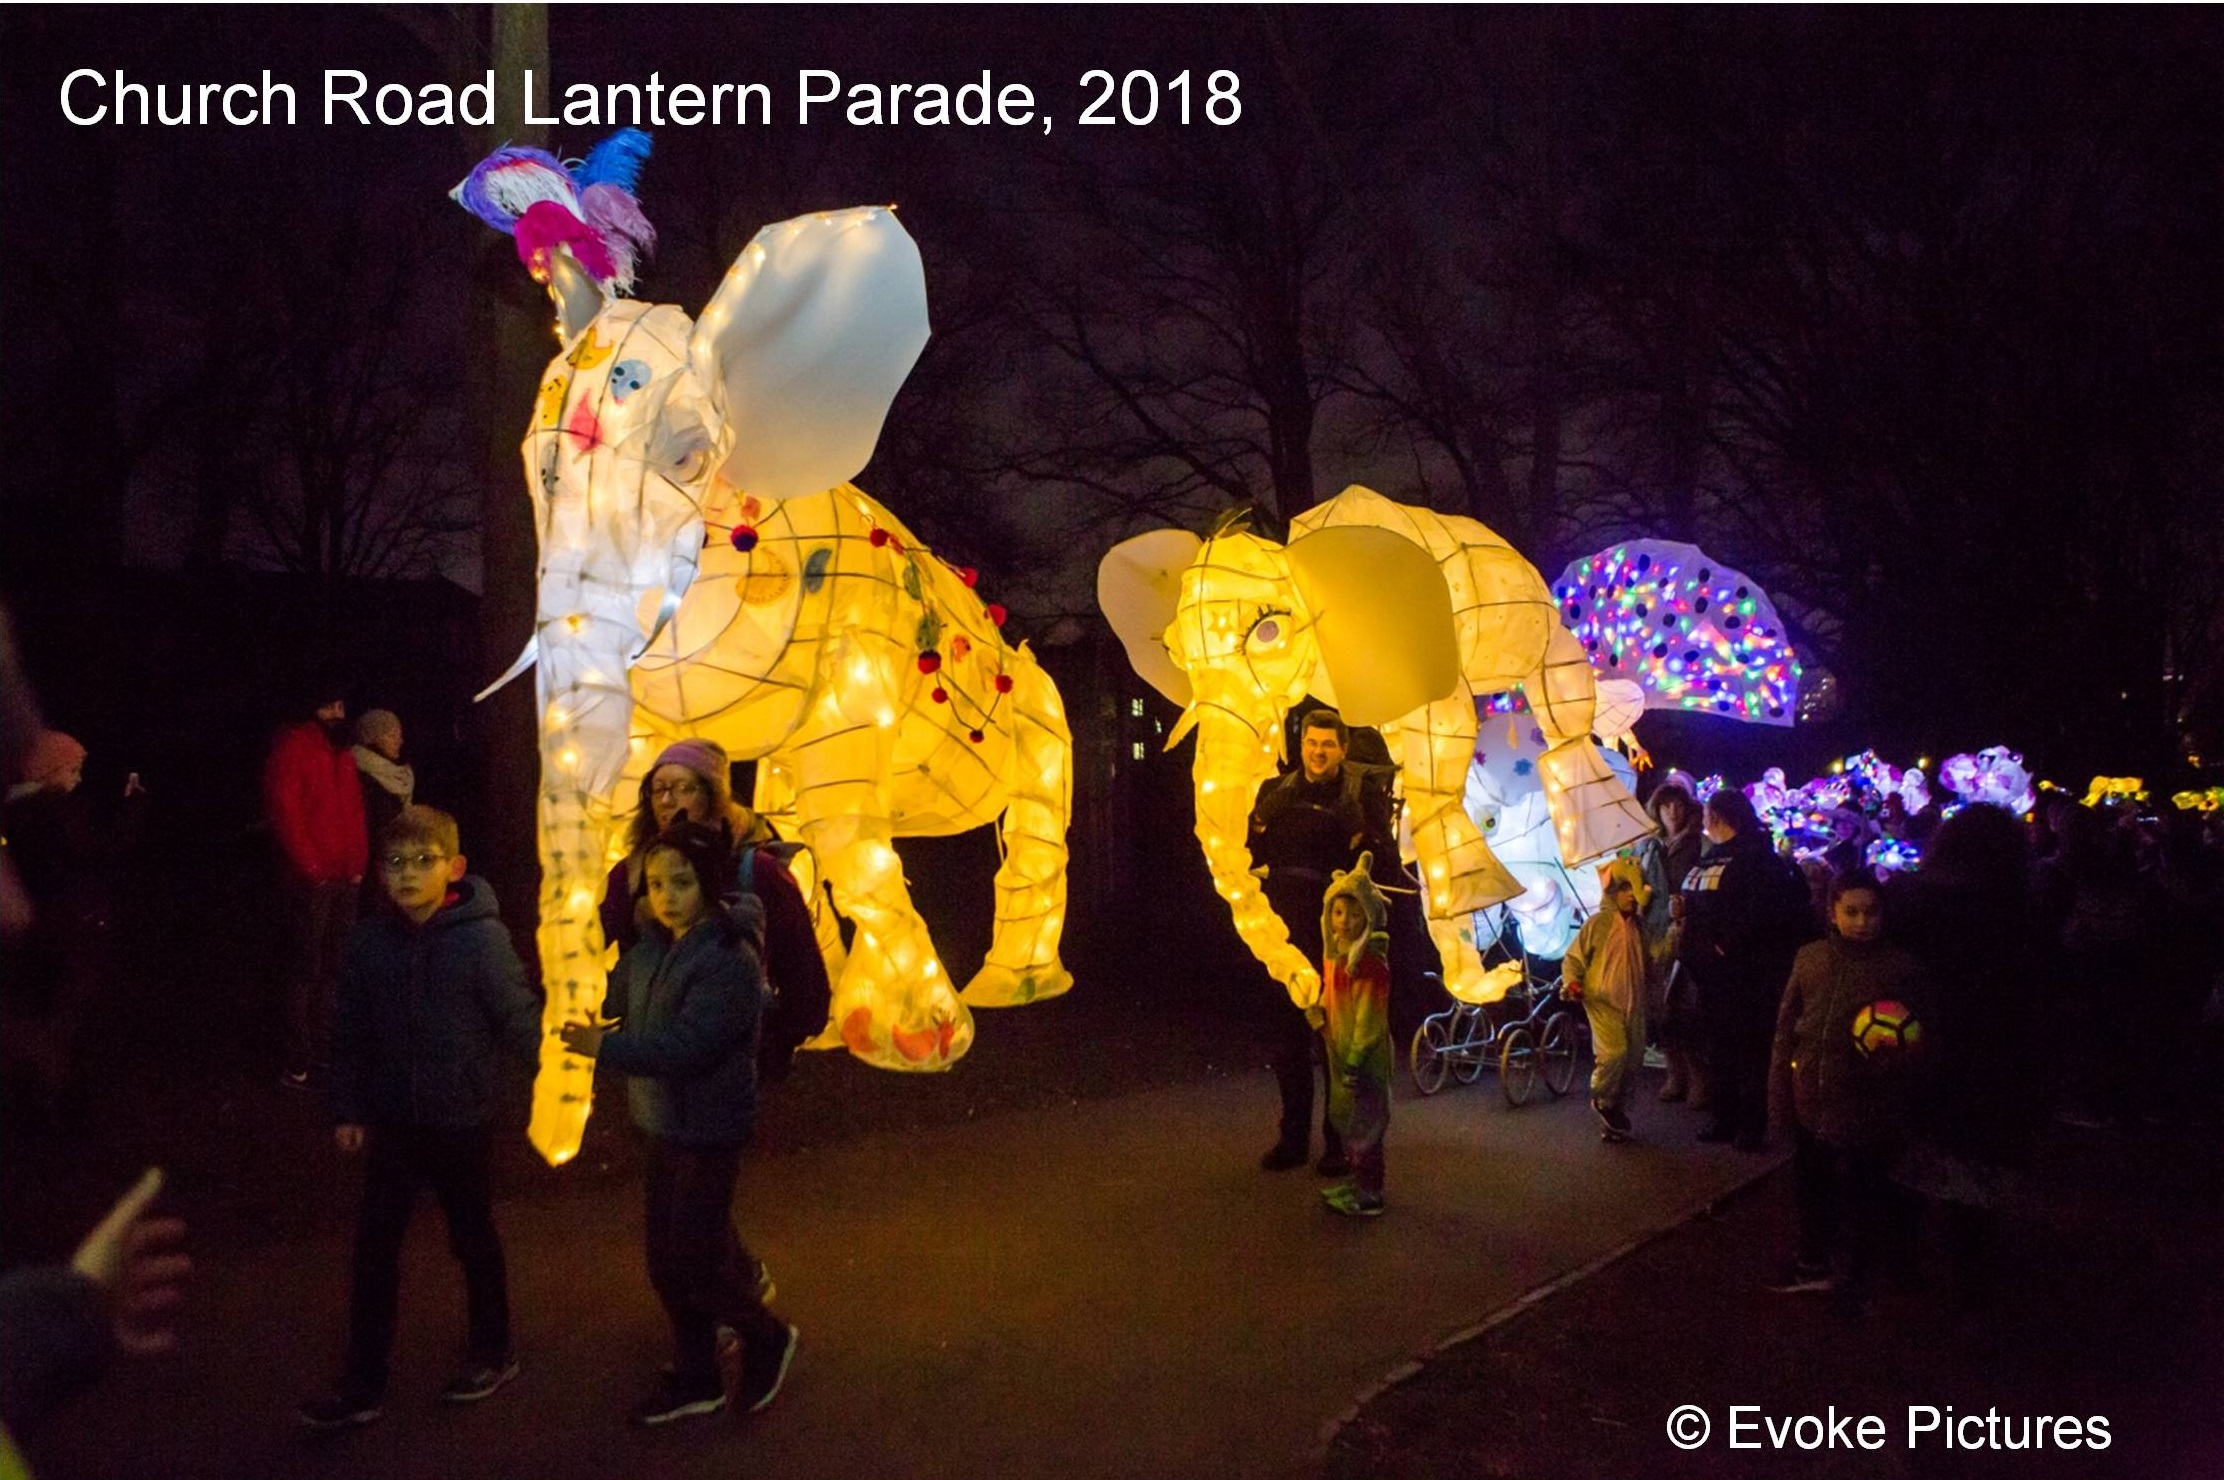 photo, Church Road Lantern Parade 2018